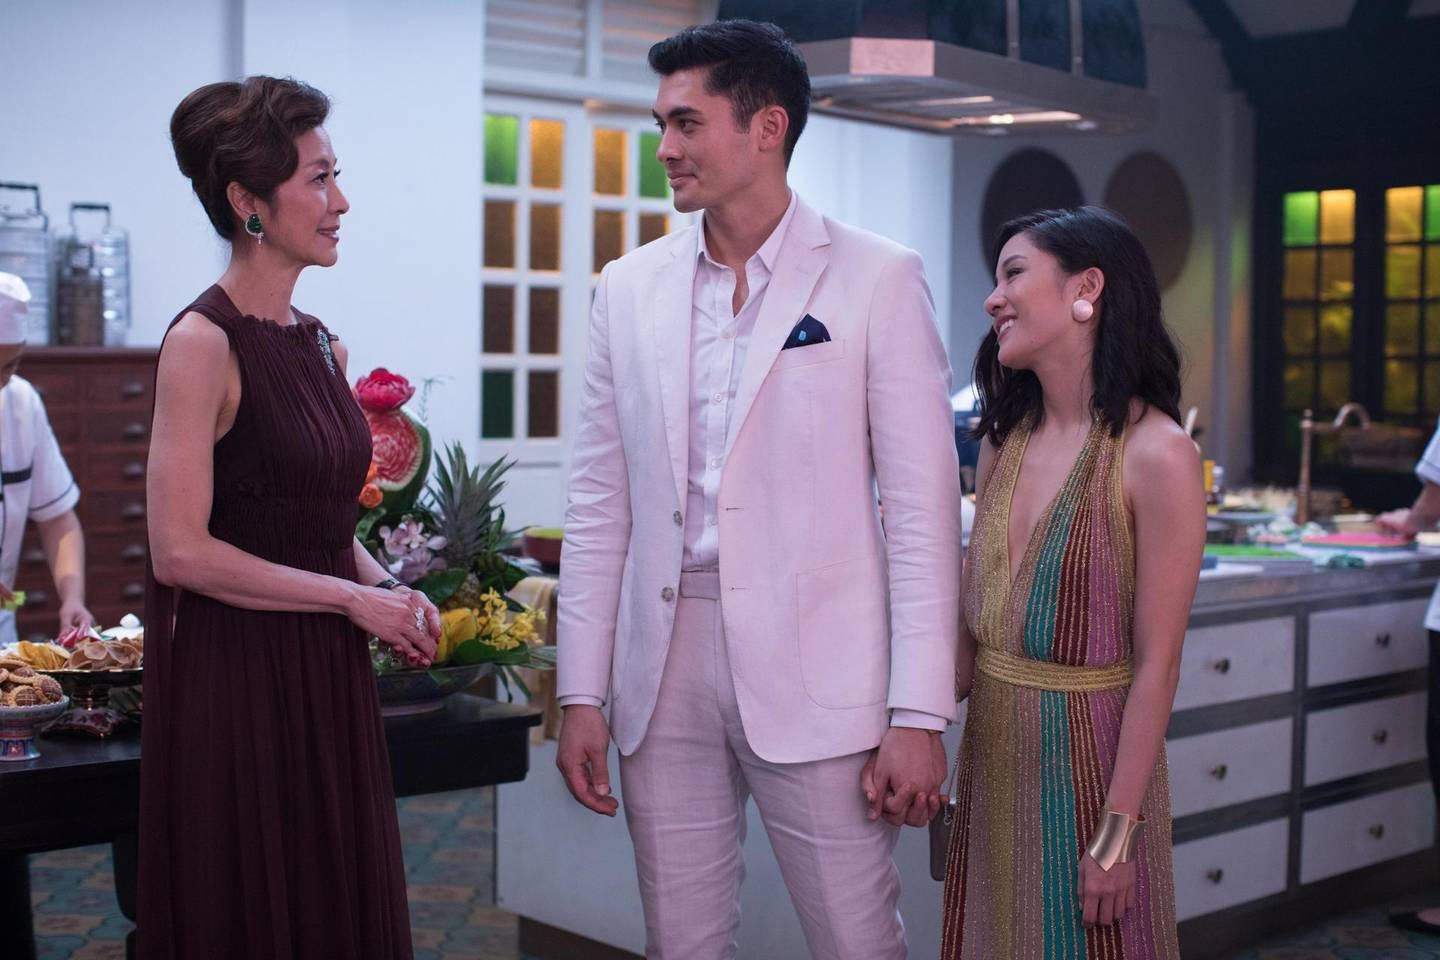 Michelle Yeoh as Eleanor Young, Henry Golding as Nick Young and Constance Wu as Rachel Chu in Crazy Rich Asians. Sanja Bucko / Warner Bros. Pictures